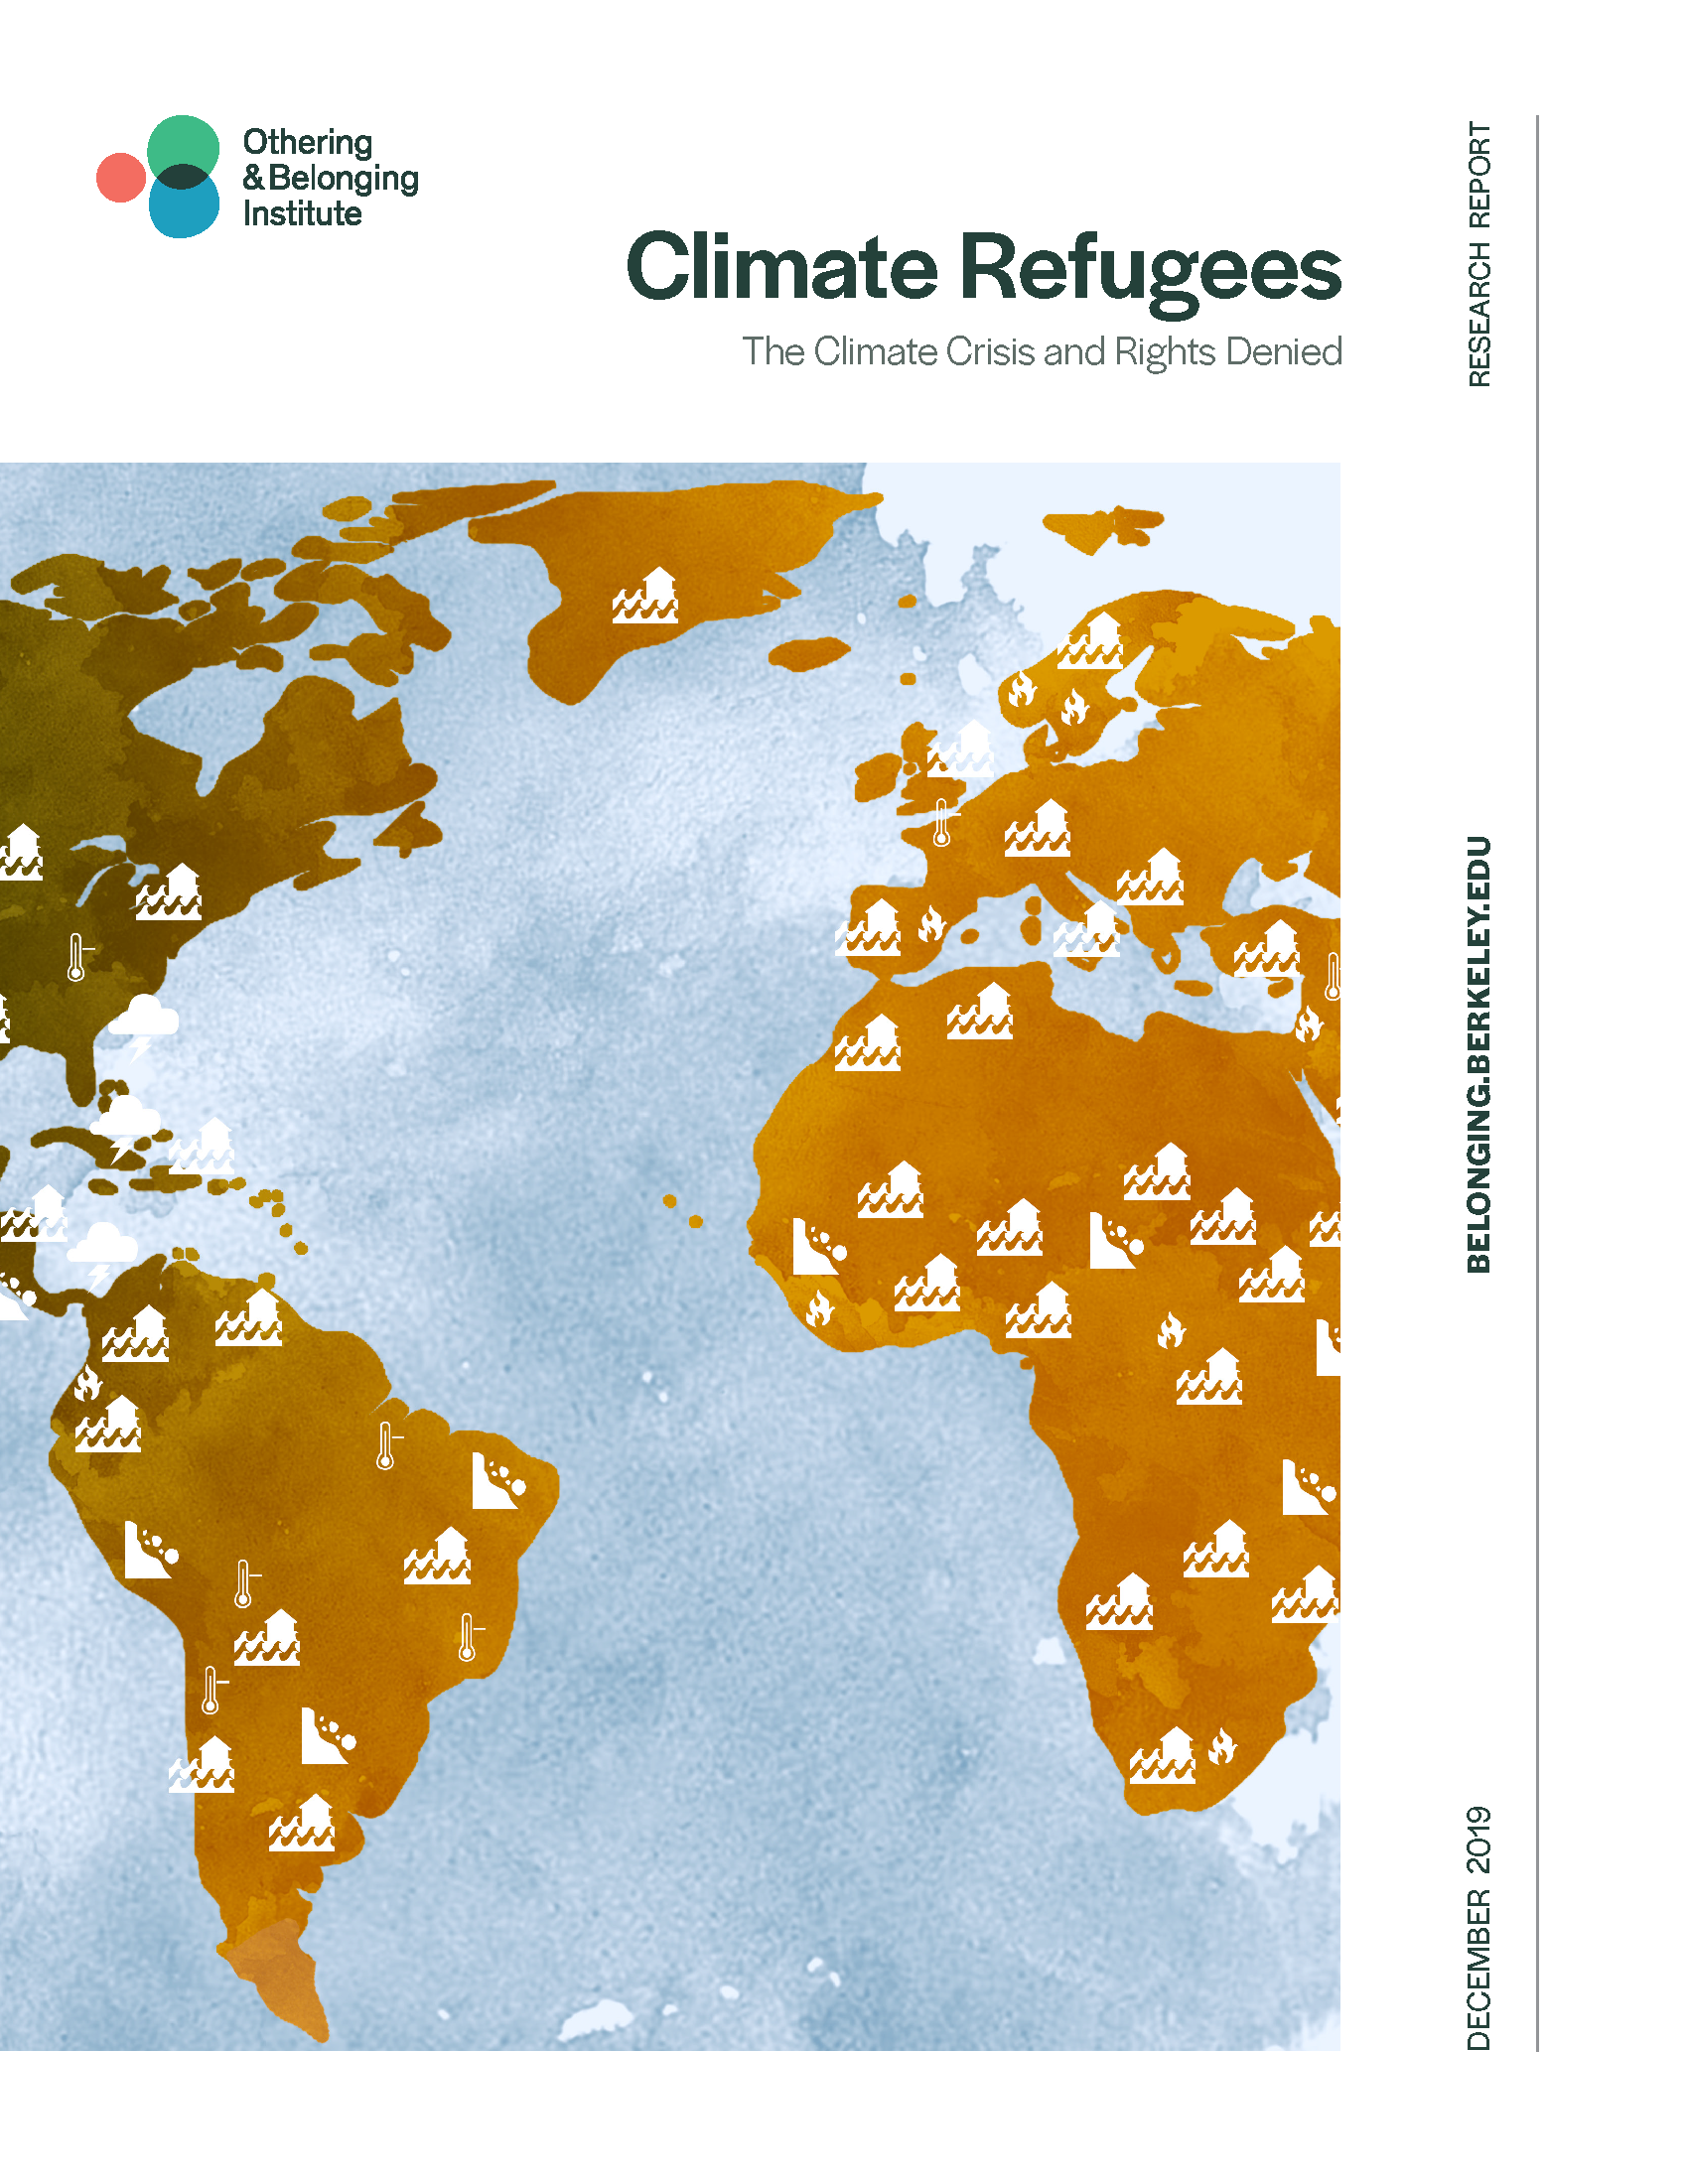 Cover of the Climate Refugees report